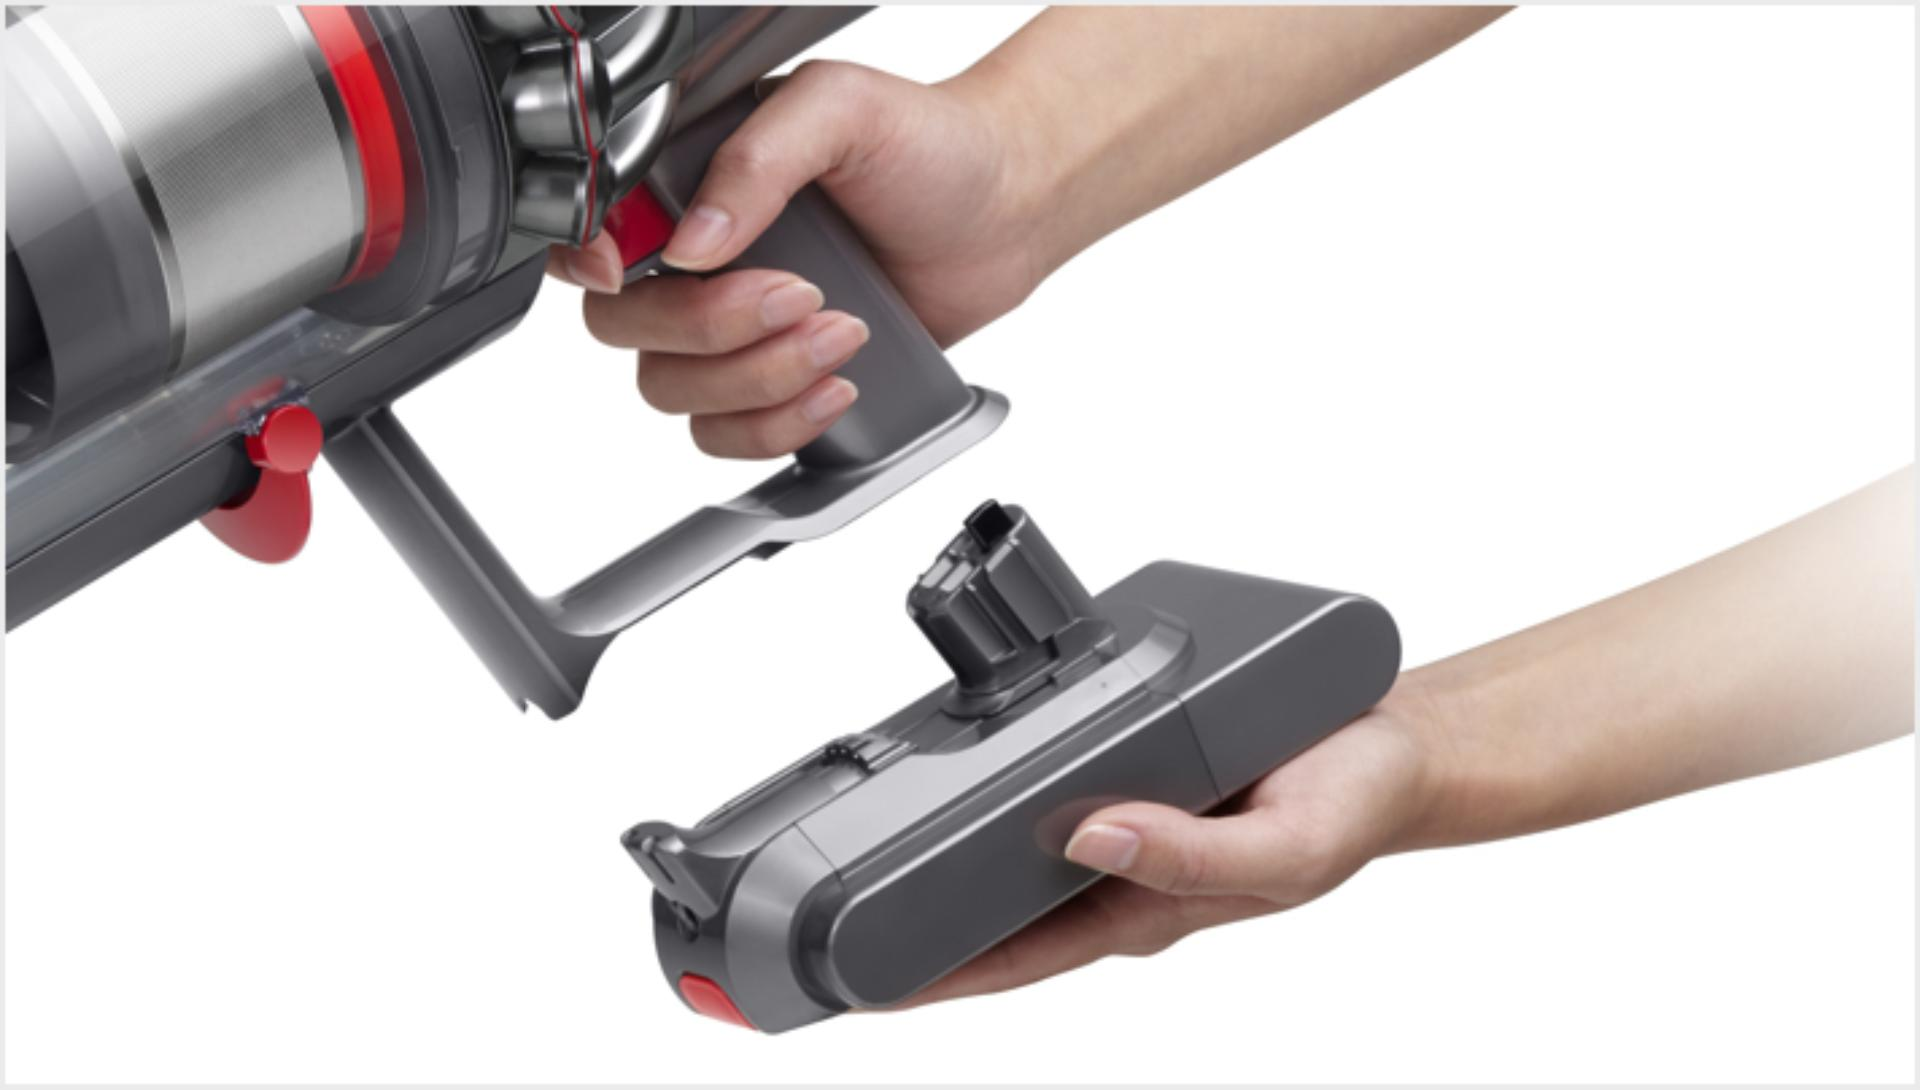 The Dyson V11™ vacuum click-in battery